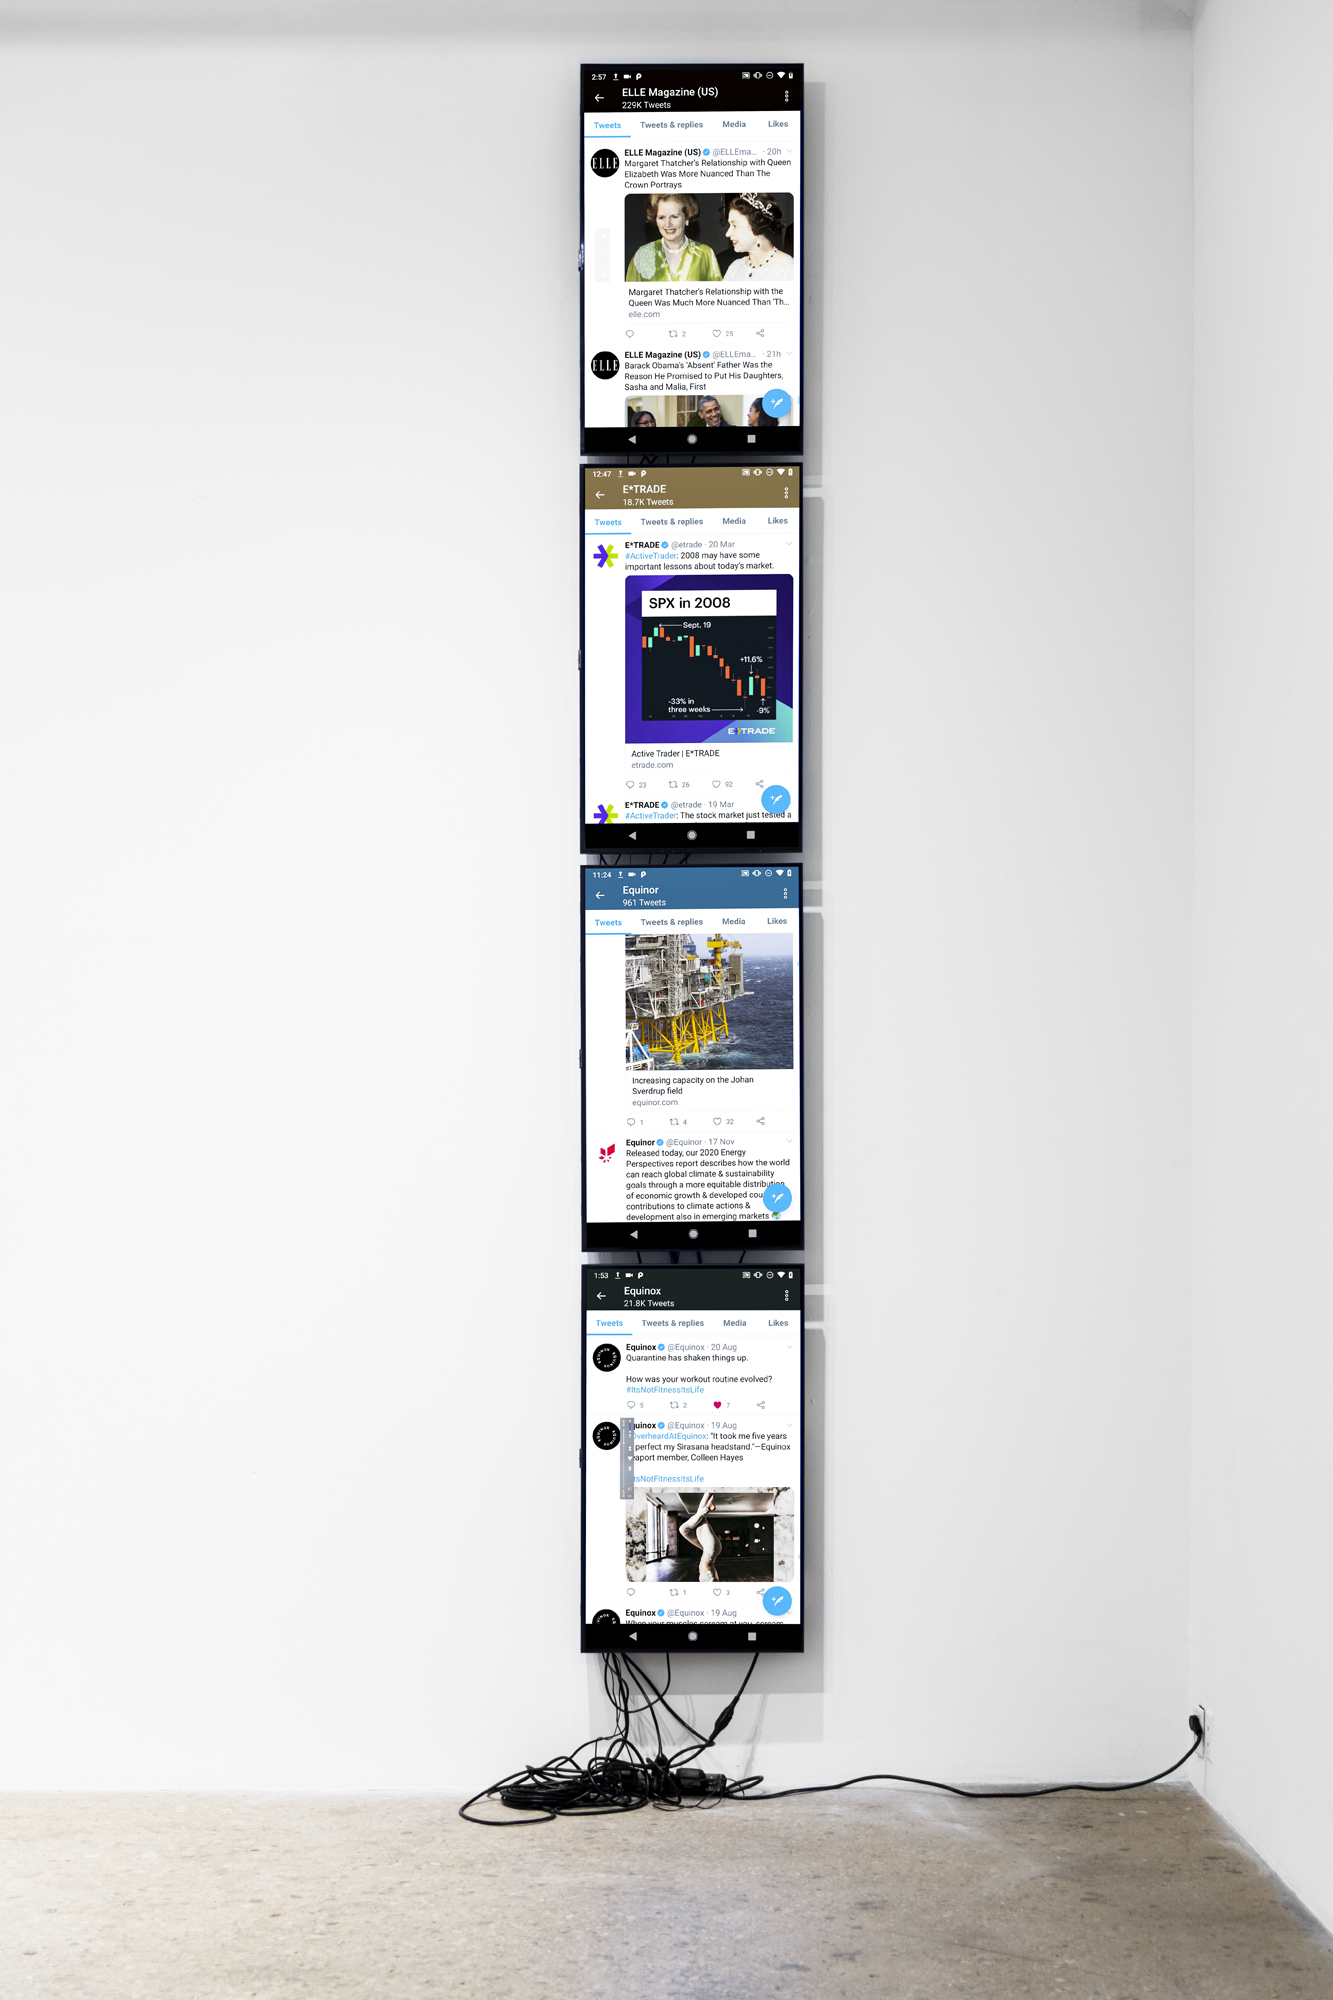 Cory Arcangel, elleusa, equinor, equinox, etrade_financial, 2020. 4-channel video recordings of a live bot performance on Twitter, November 30, 2020. Dimensions variable. Edition of 3, +2APs. Courtesy the artist and Greene Naftali, New York